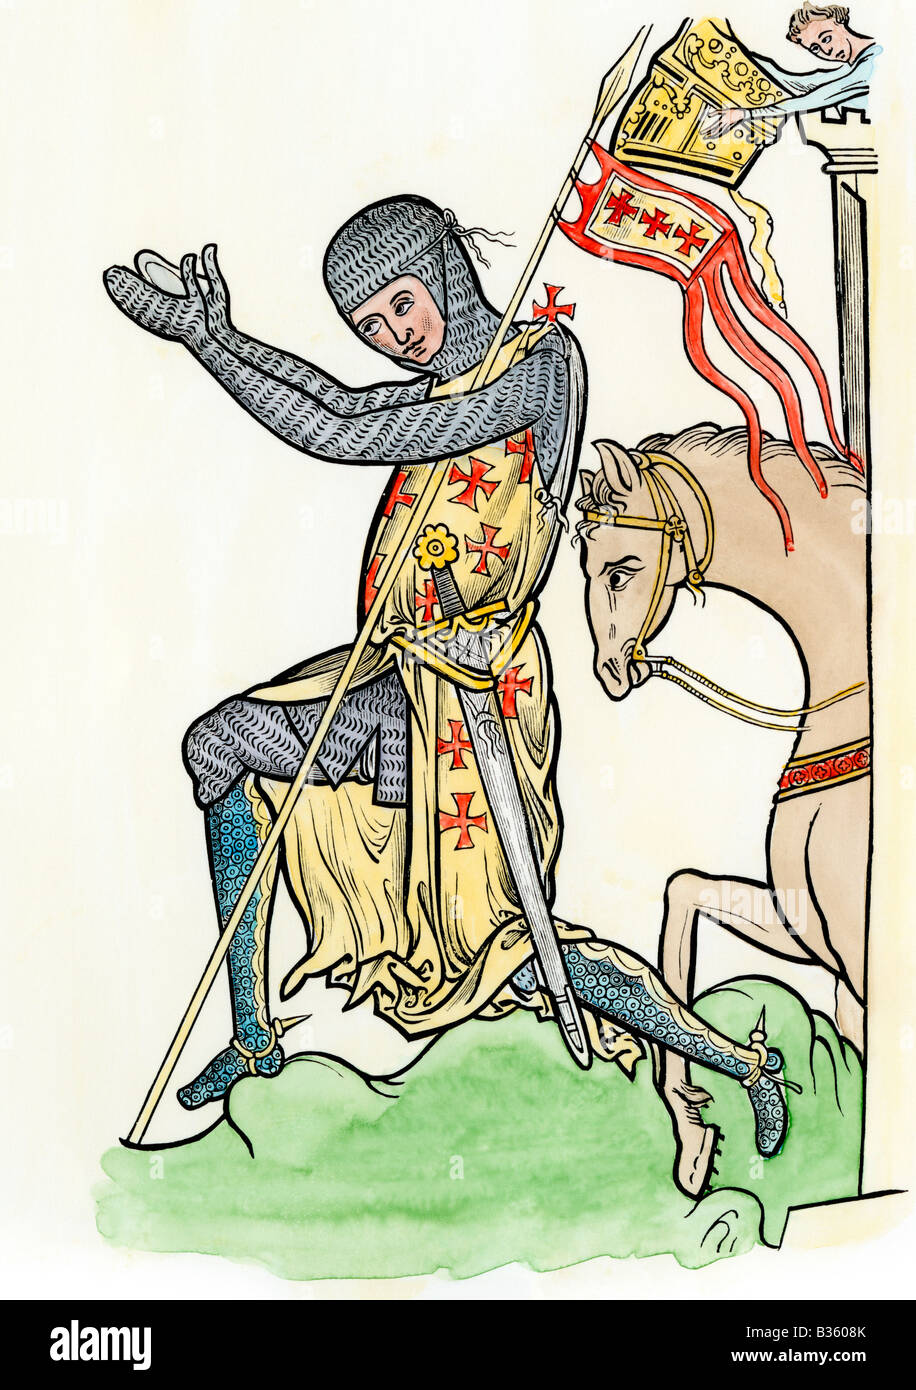 Knight in armor paying homage to his lord late 1200s. Hand-colored woodcut - Stock Image